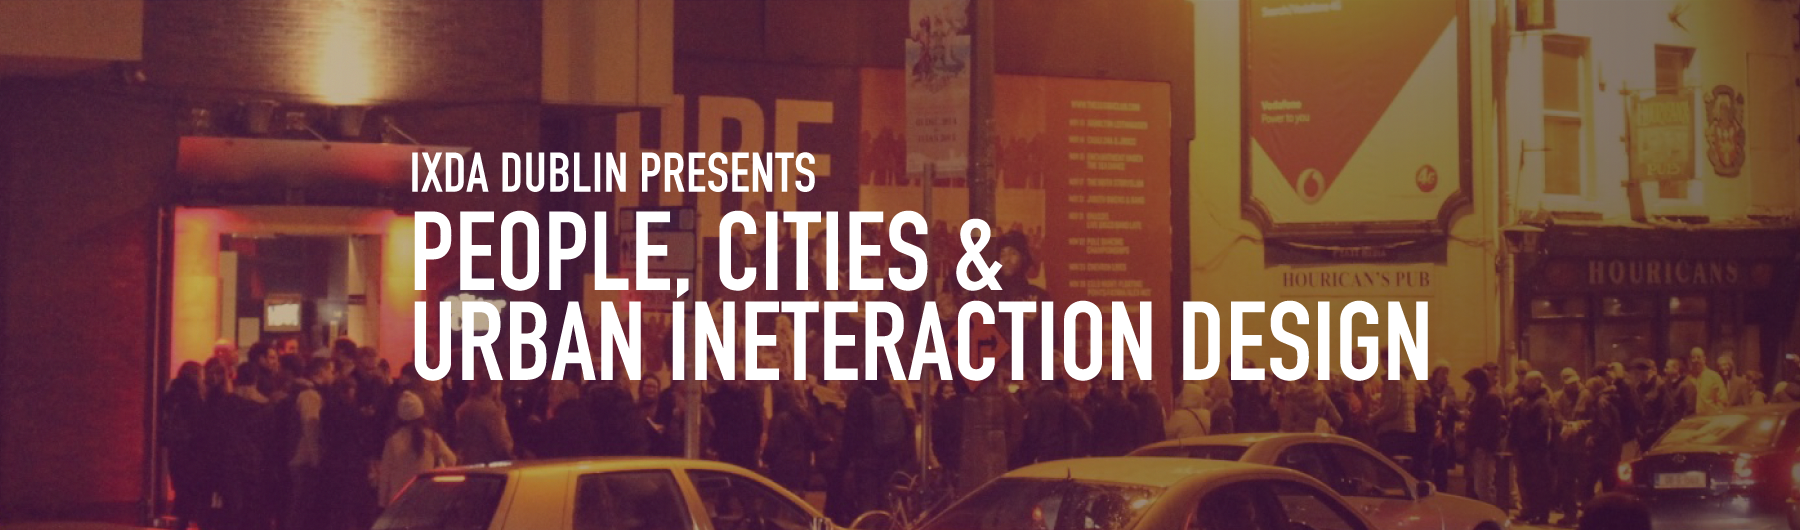 People, Cities & Urban Interaction Design